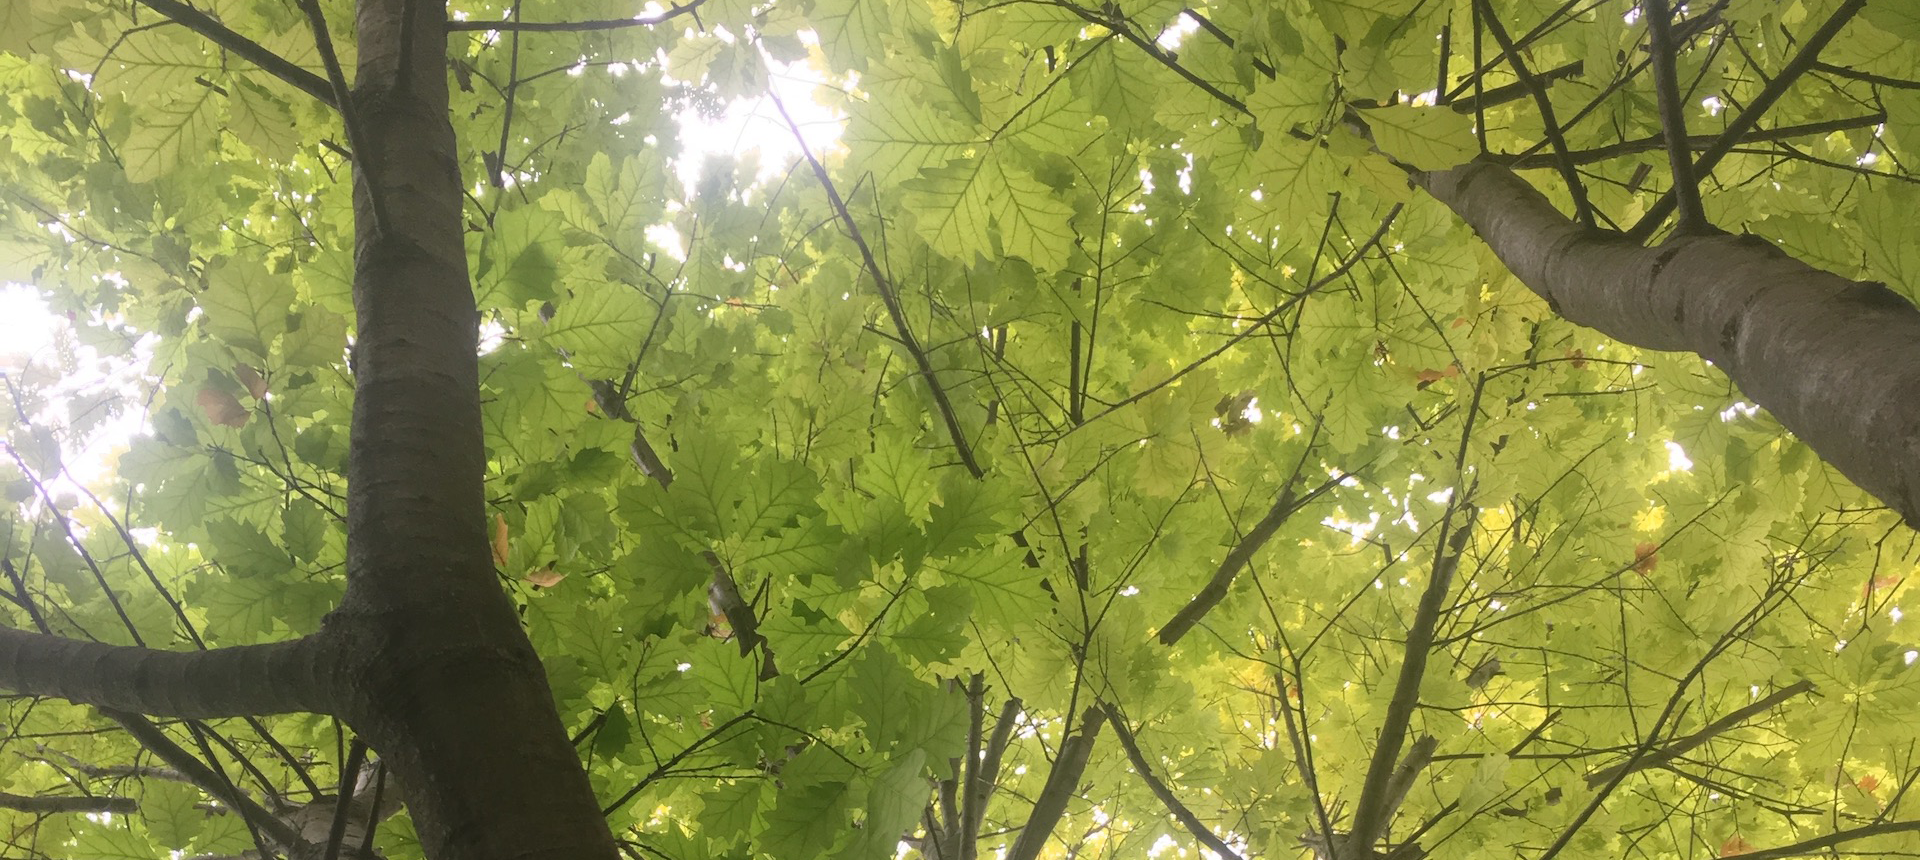 A close up photo of a tree's branches and leaves